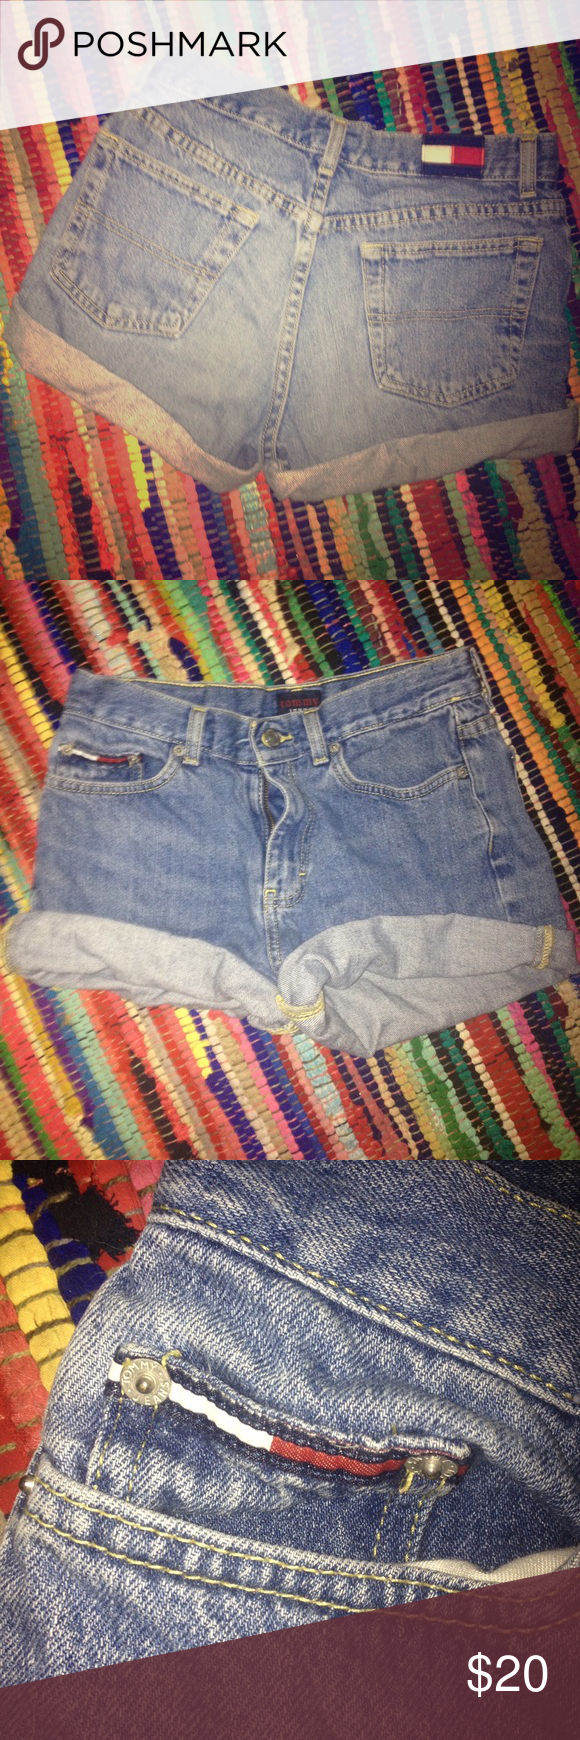 Vintage Tommy Shorts Great condition! Super cute vintage shorts! Tommy Hilfiger Shorts Jean Shorts